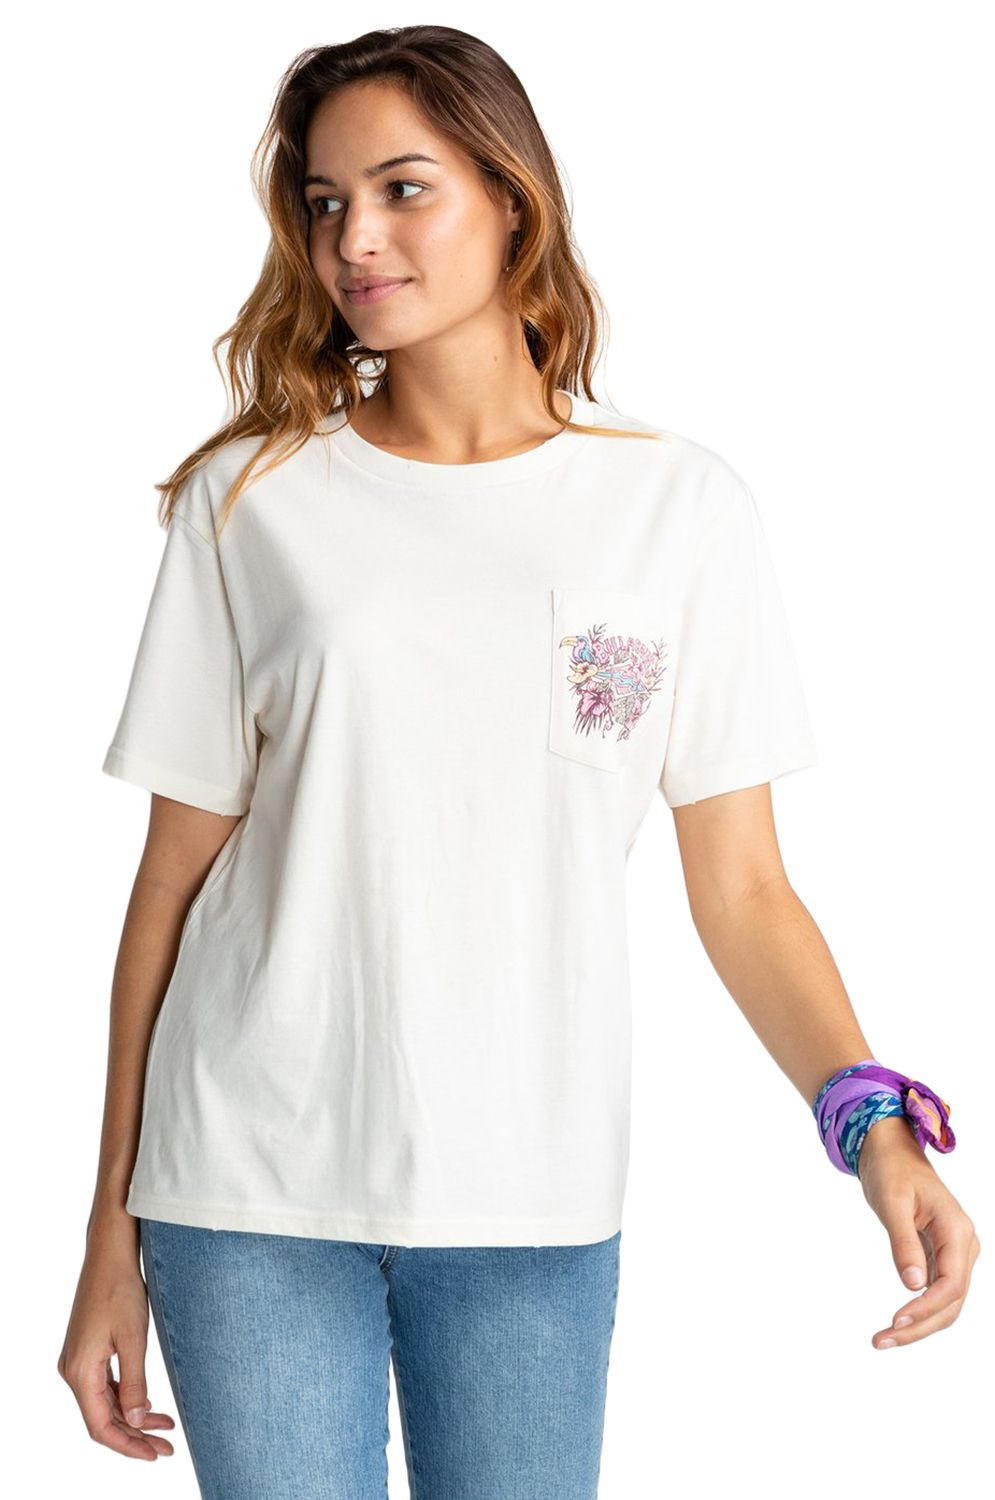 T-Shirt Billabong FLORAL SOURCE Cool Wip